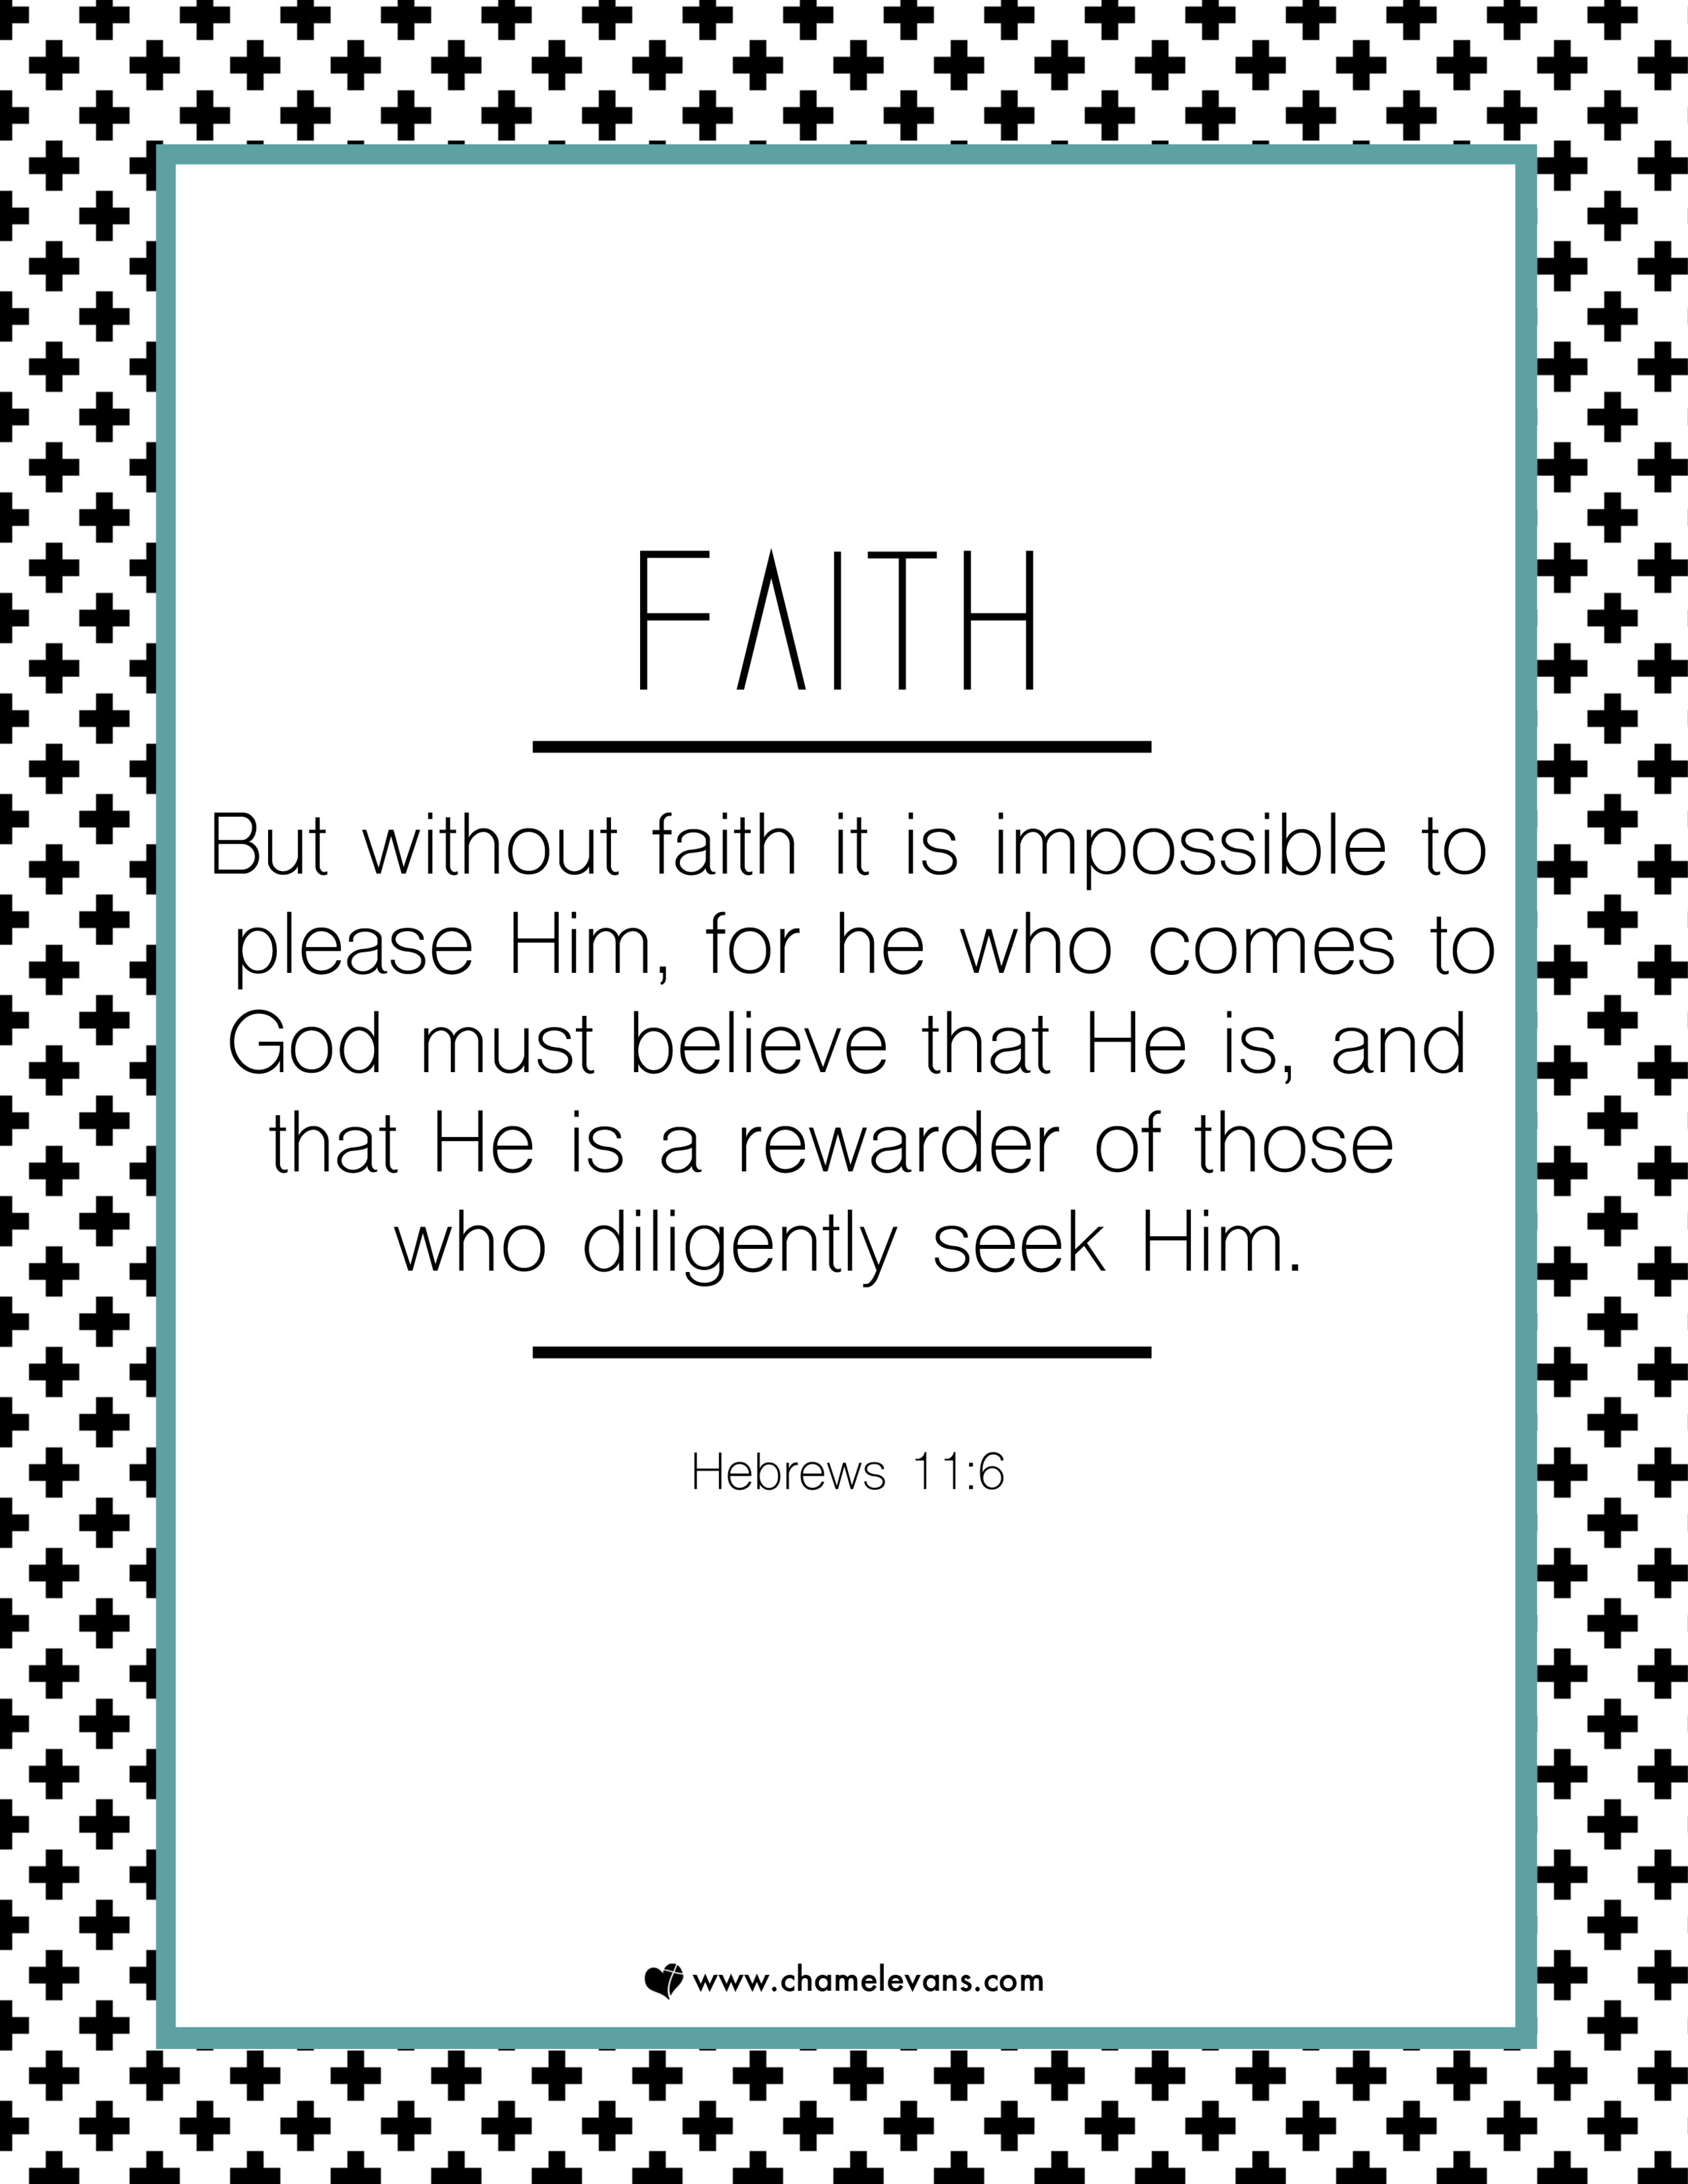 FREE SCRIPTURE ART PRINTABLES - faith  - STAND IN GOD'S TRUTH | WWW.CHAMELEVANS.COM